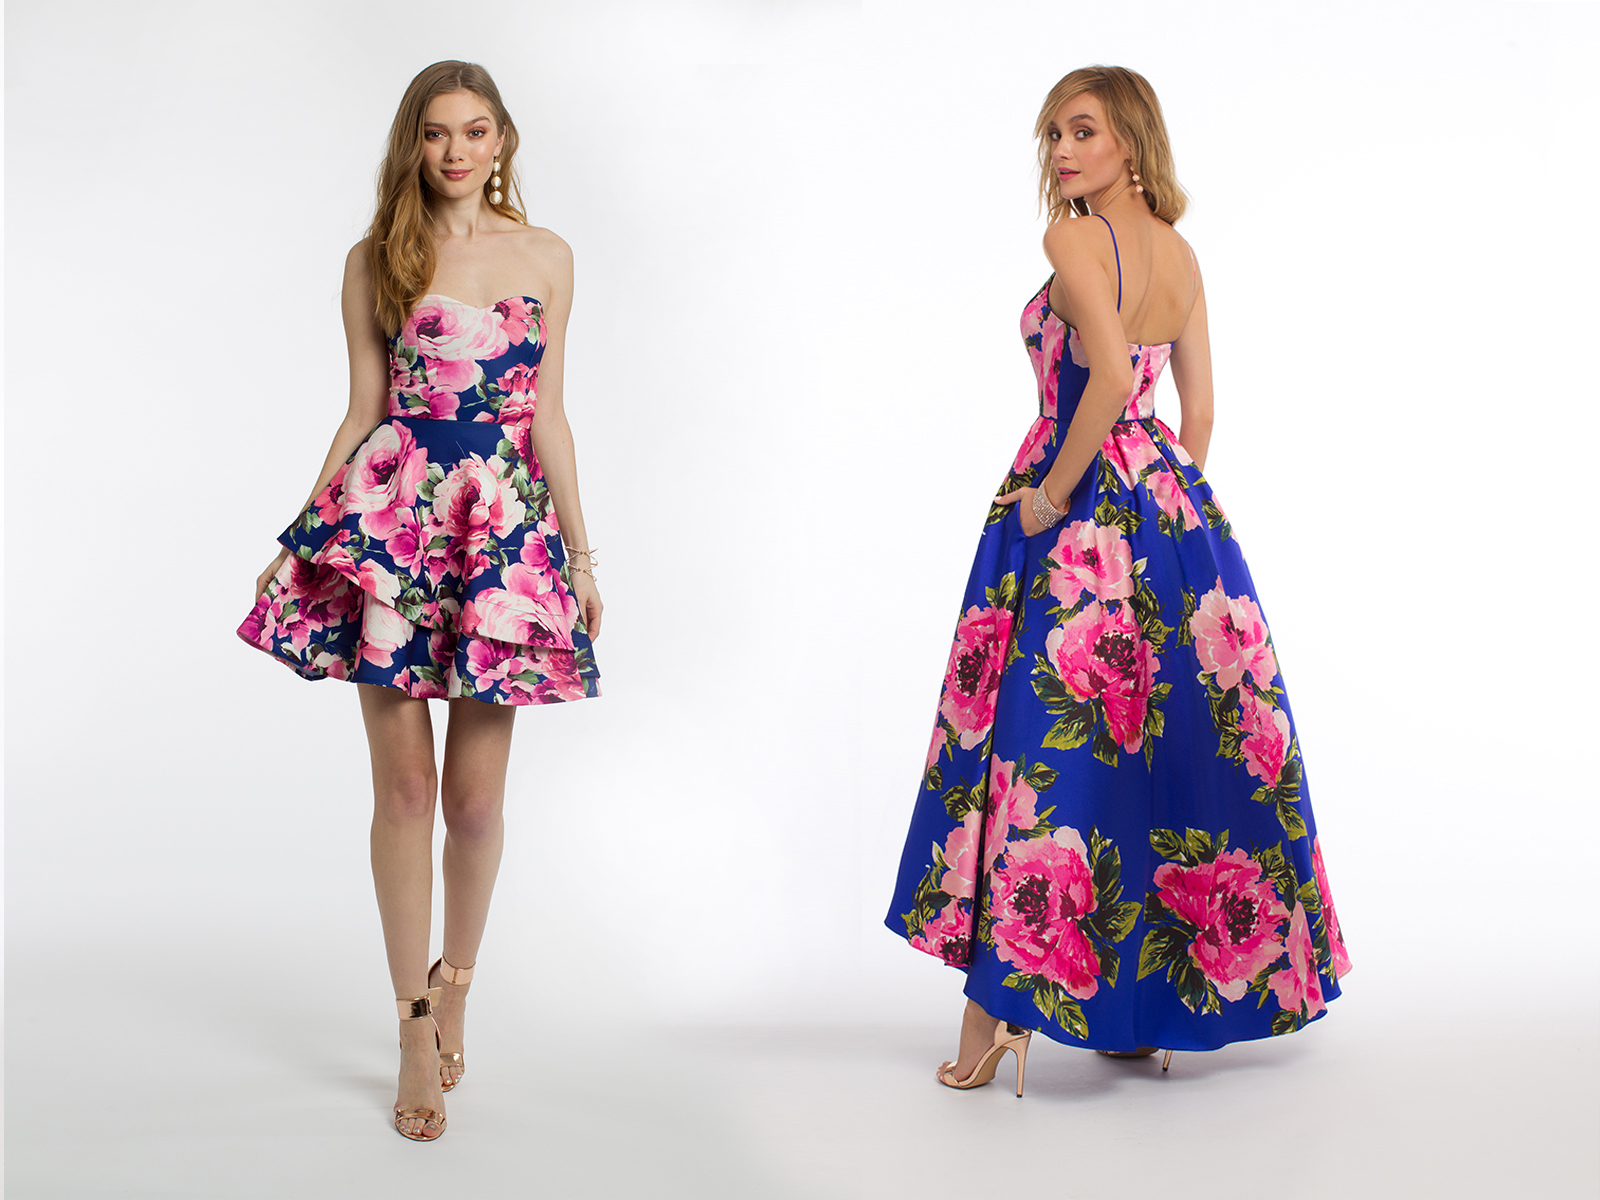 Long and Short Floral Dresses